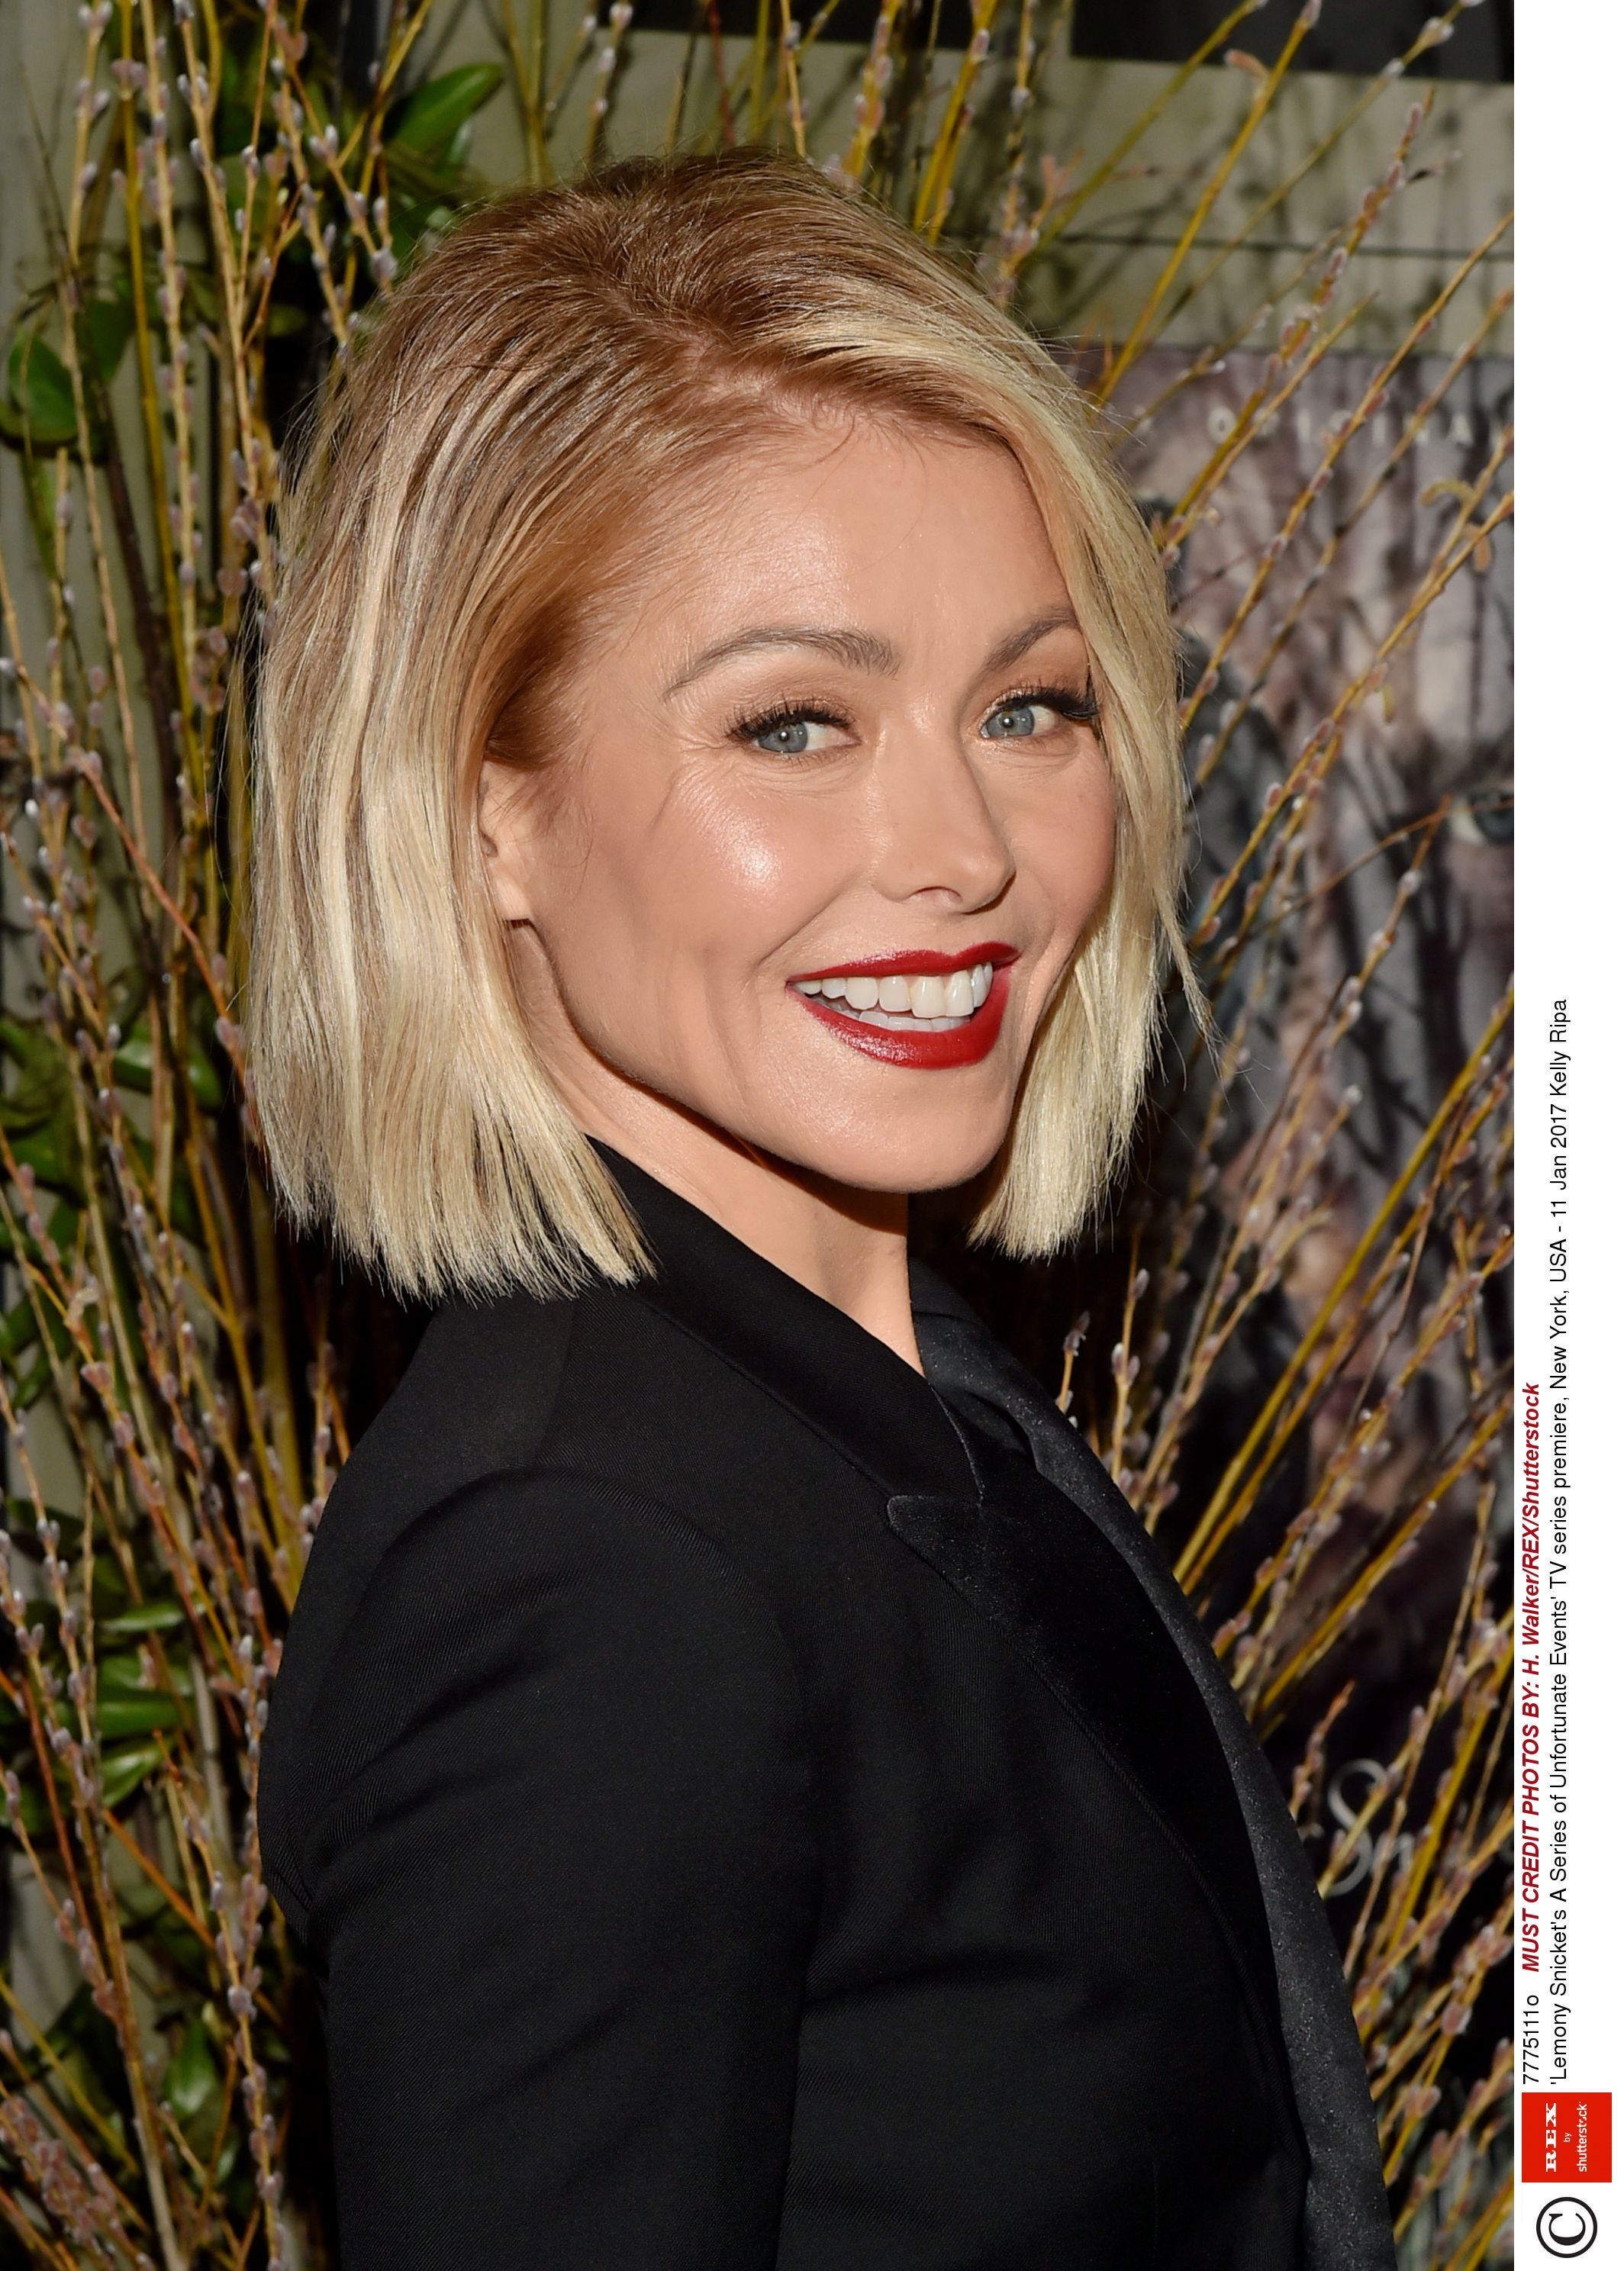 Kelly Ripa Hairstyles 2017 Famous Hair Style 2018